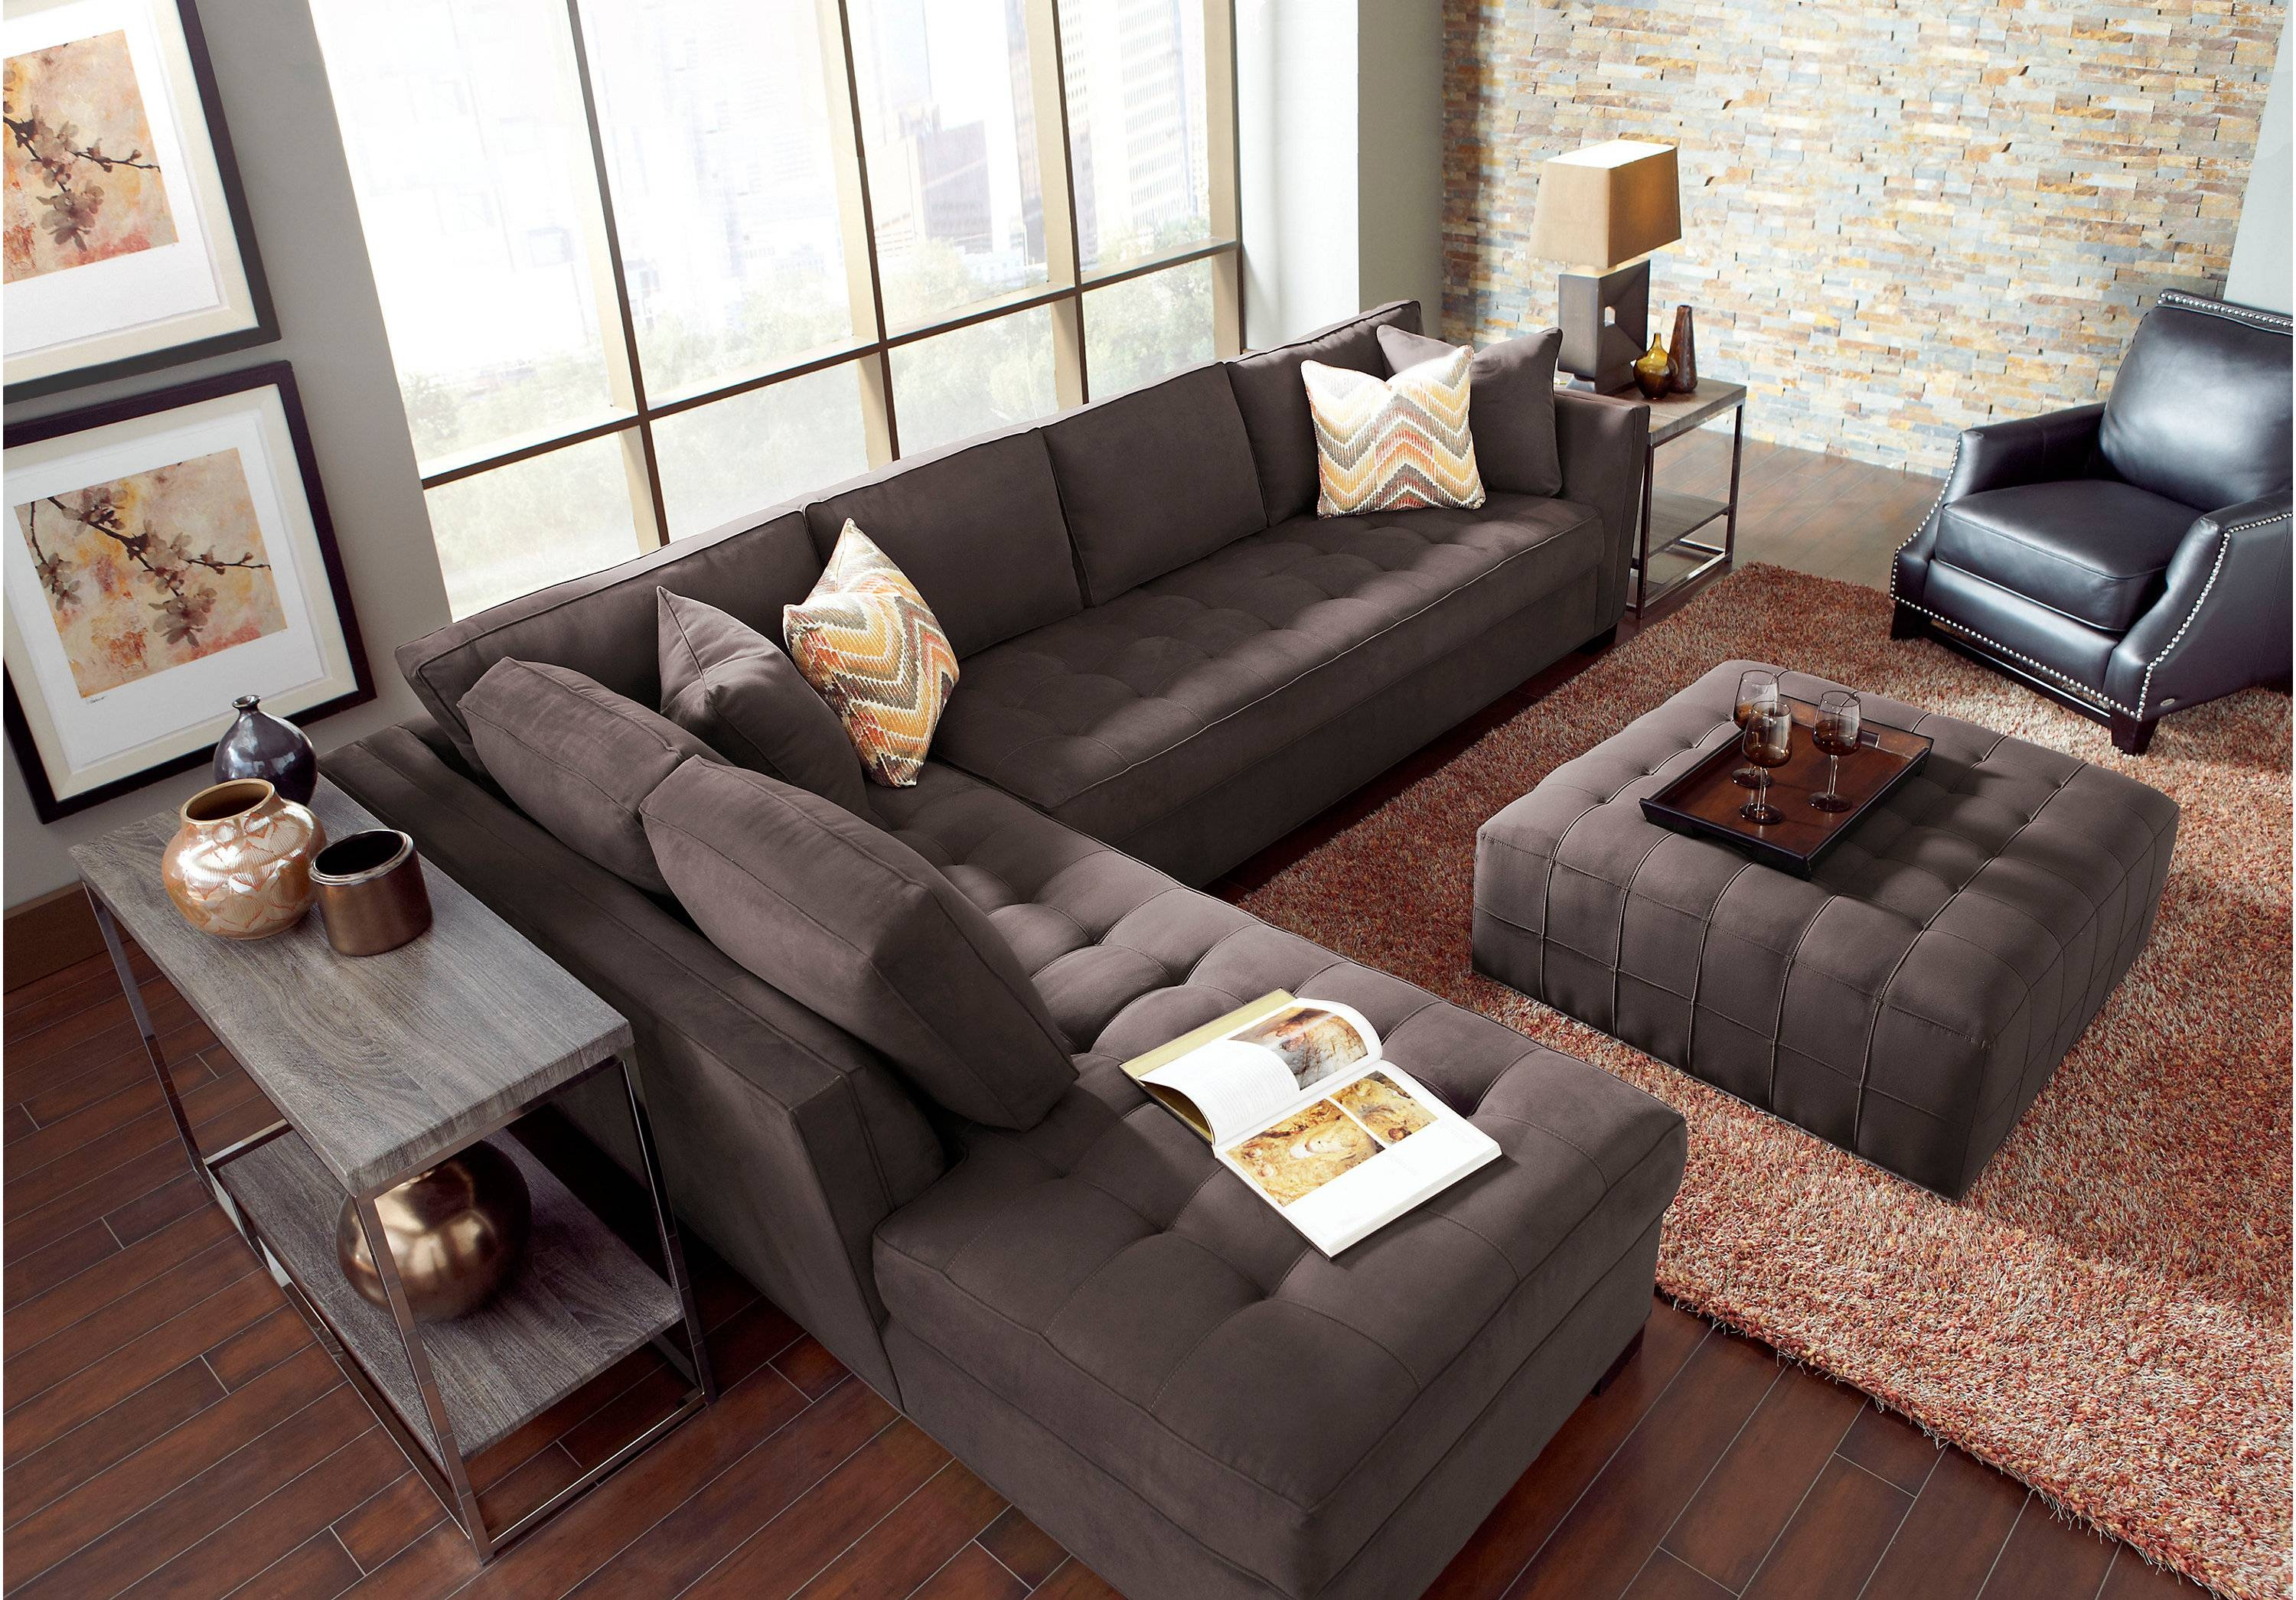 Furniture: Cindy Crawford Sectional Sofas | Cindy Crawford Leather inside Cindy Crawford Sectional Sofas (Image 9 of 15)